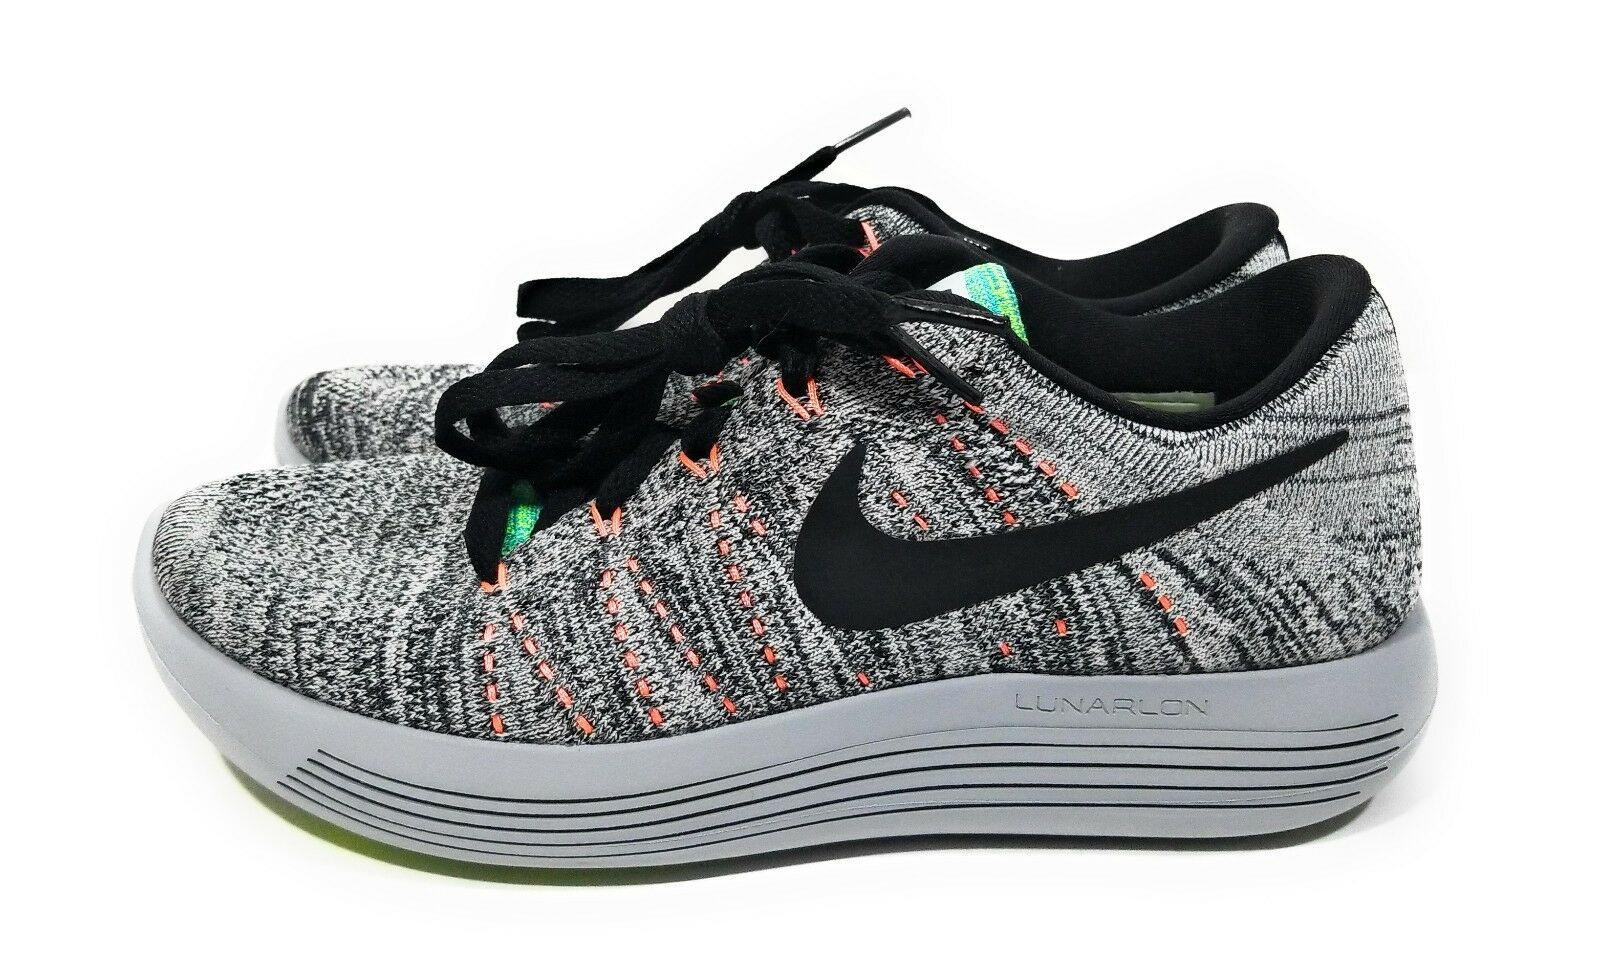 Nike Lunarepic Low Flyknit Womens Running shoes Grey Black Size 6.5